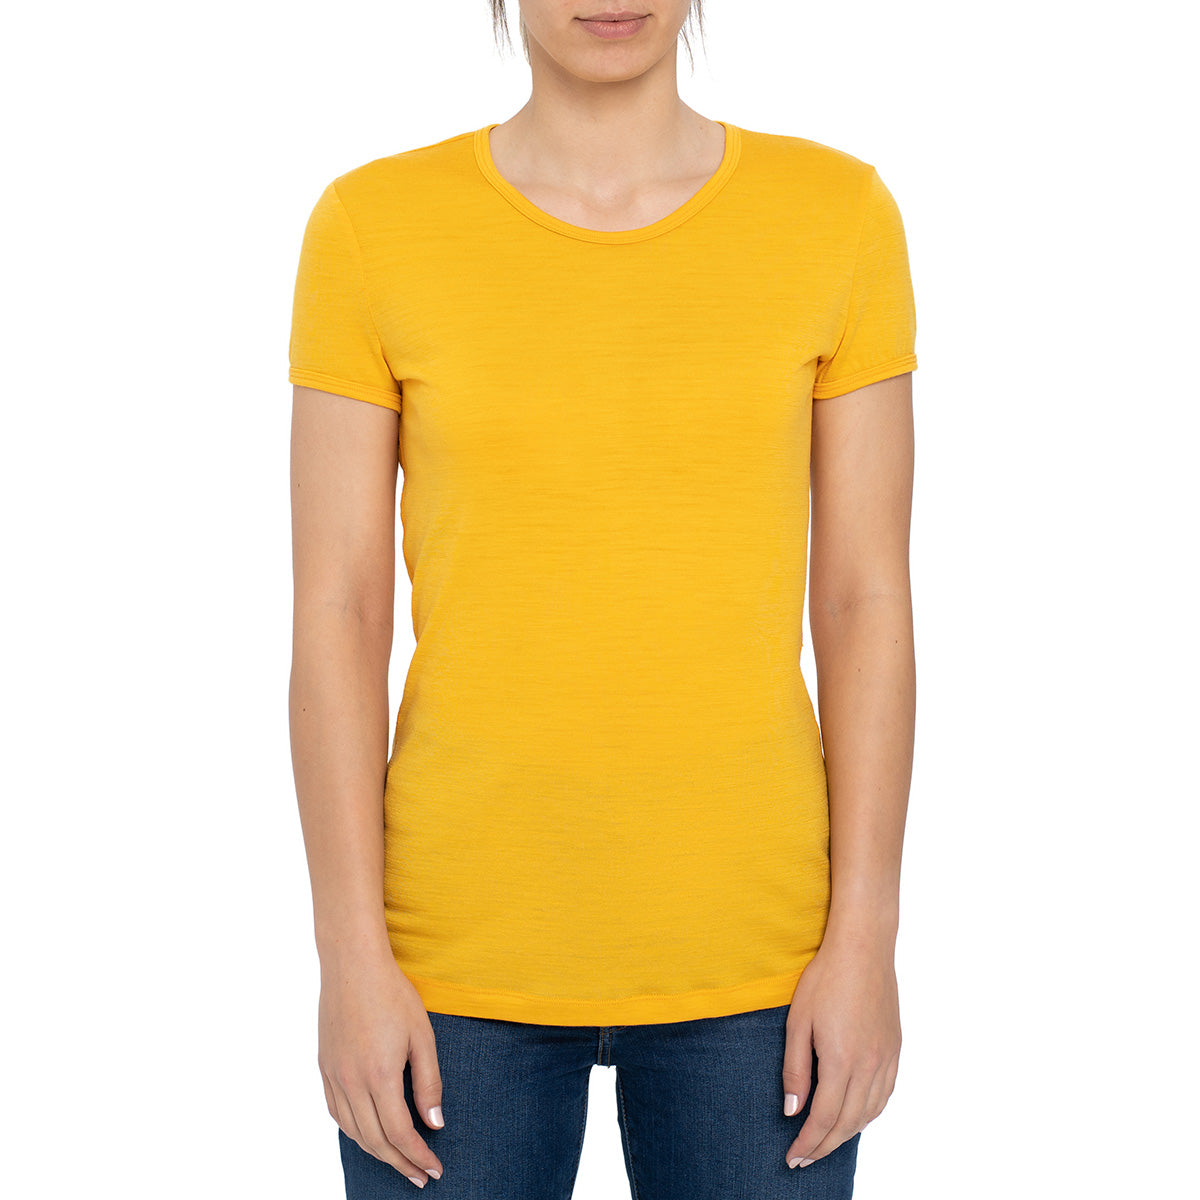 menique Women's Merino 160 Short Sleeve Crew Power Mango Color